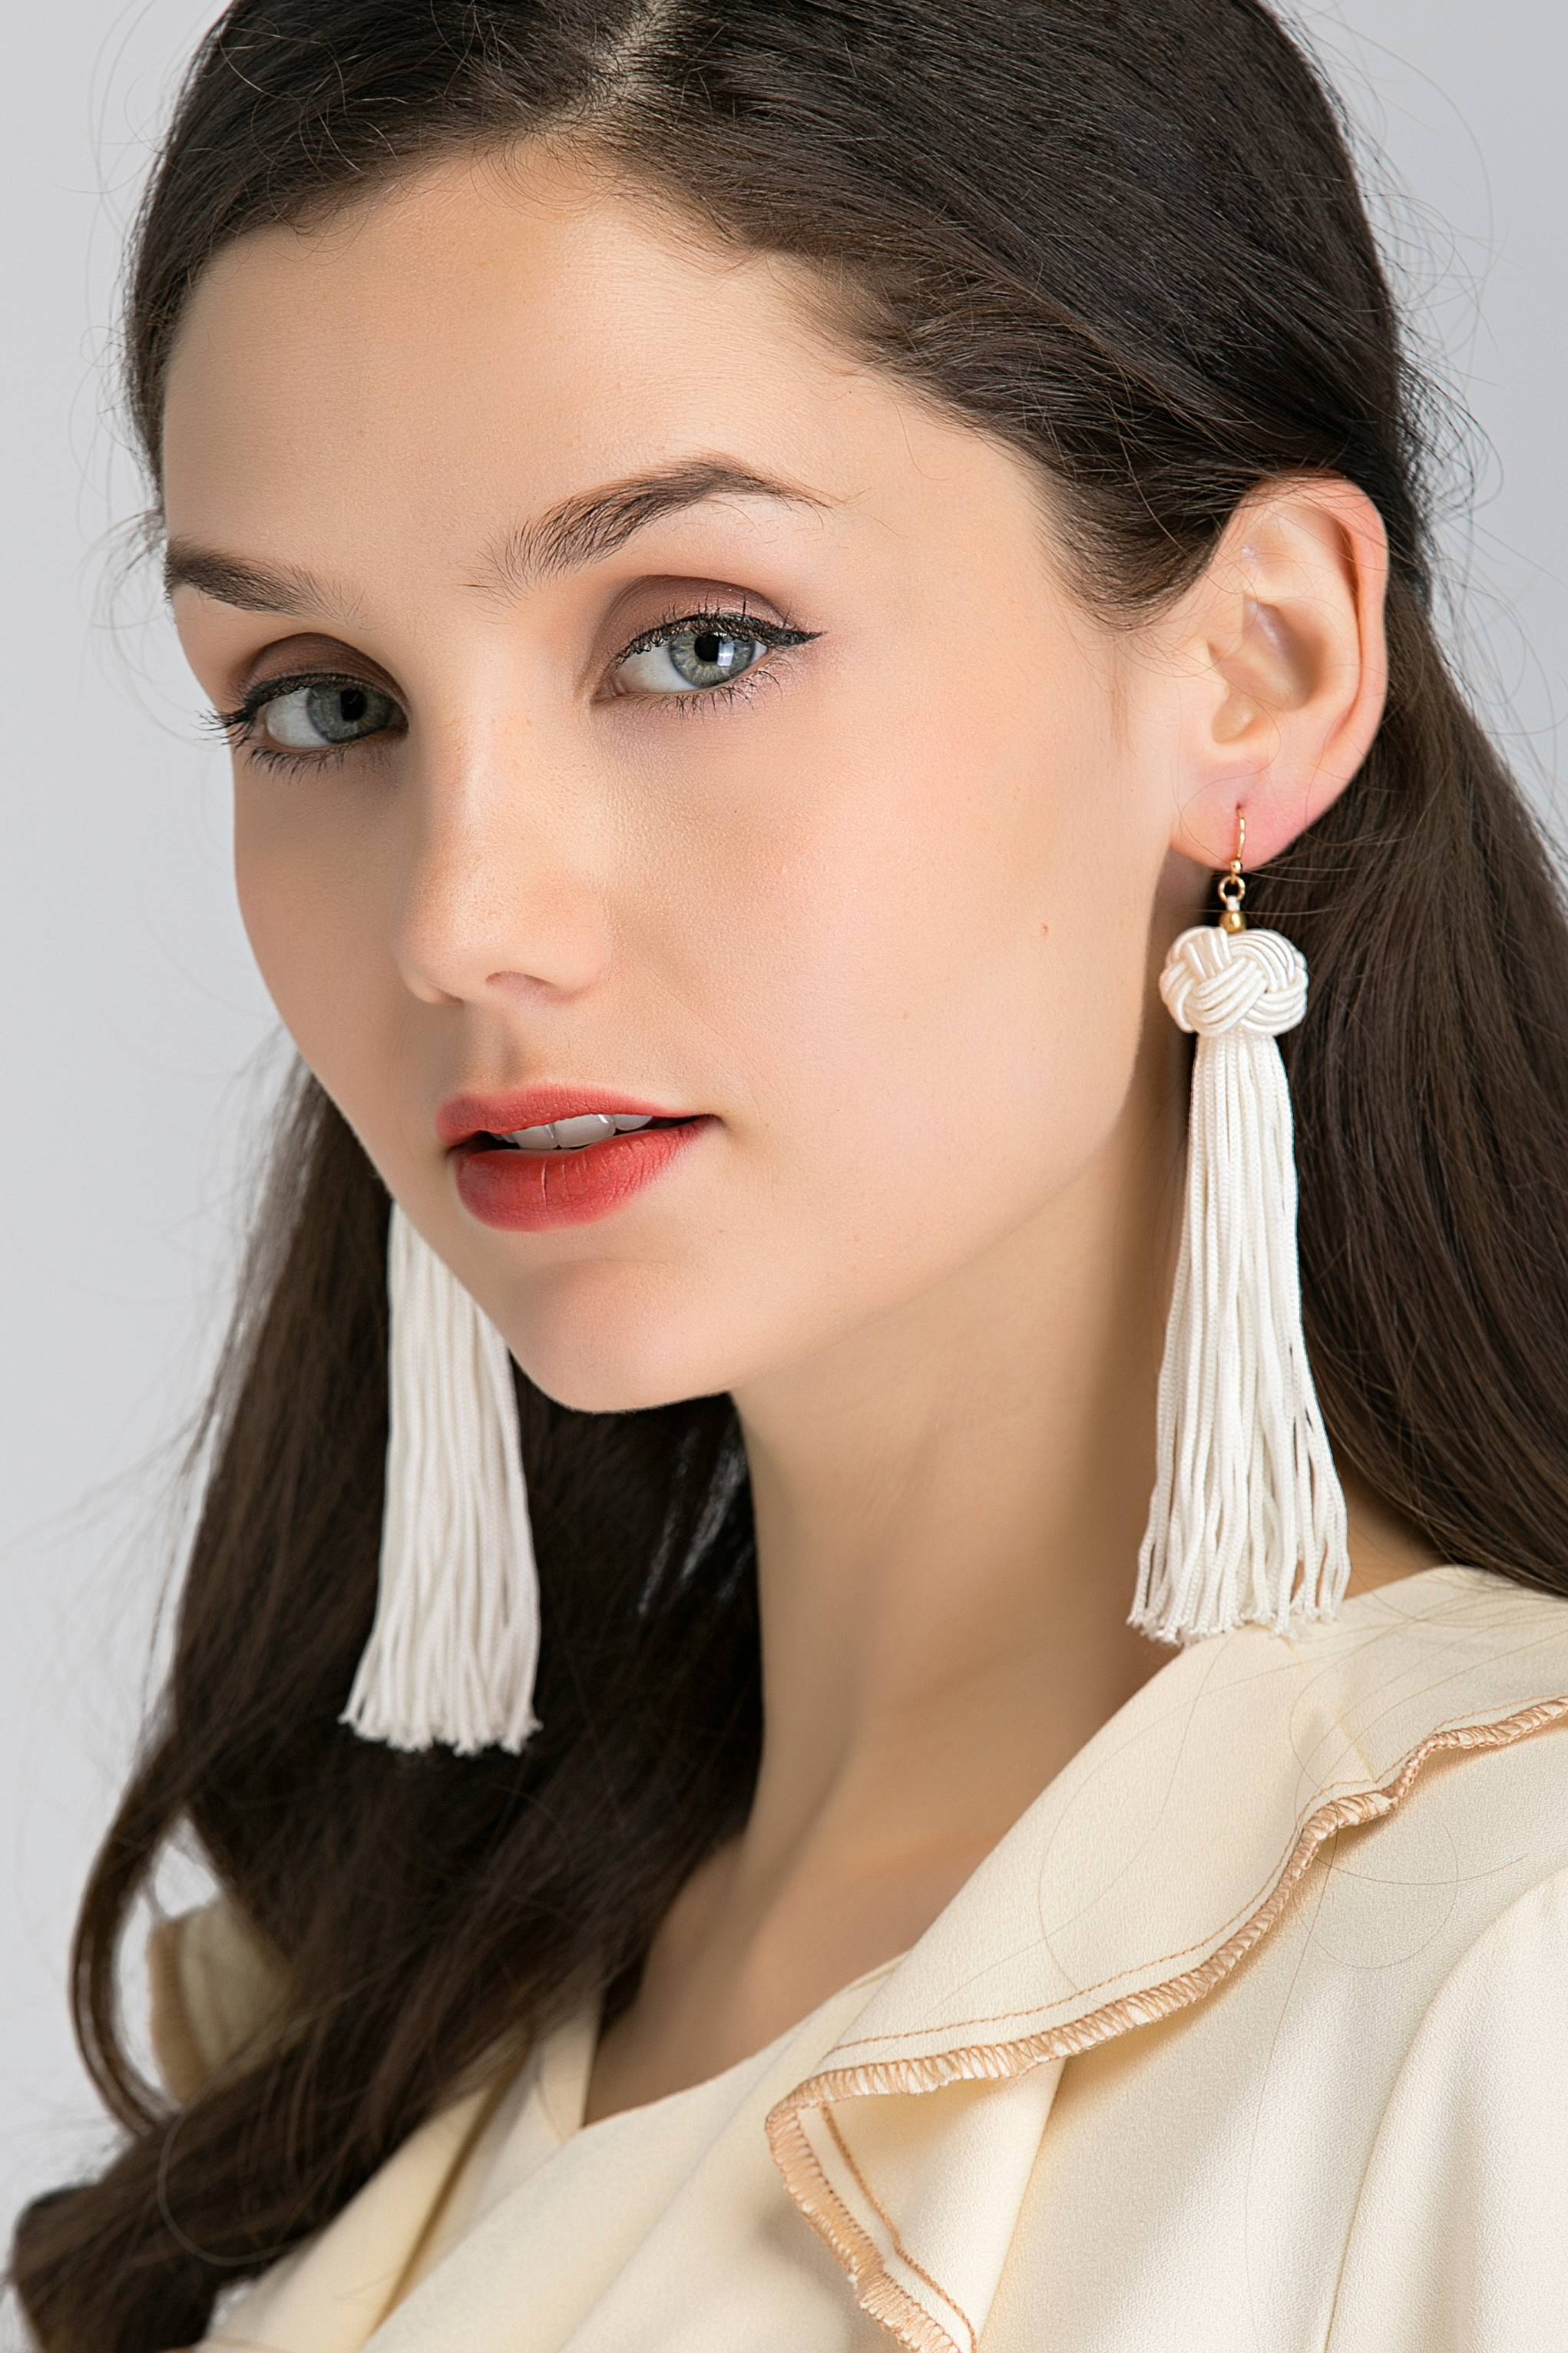 shaped hoop helene rectangles flattering look avoided your might earrings designers jewelry be styles round gorgeous for while or ovals a black long very and are face the perfect in find ladies diary with